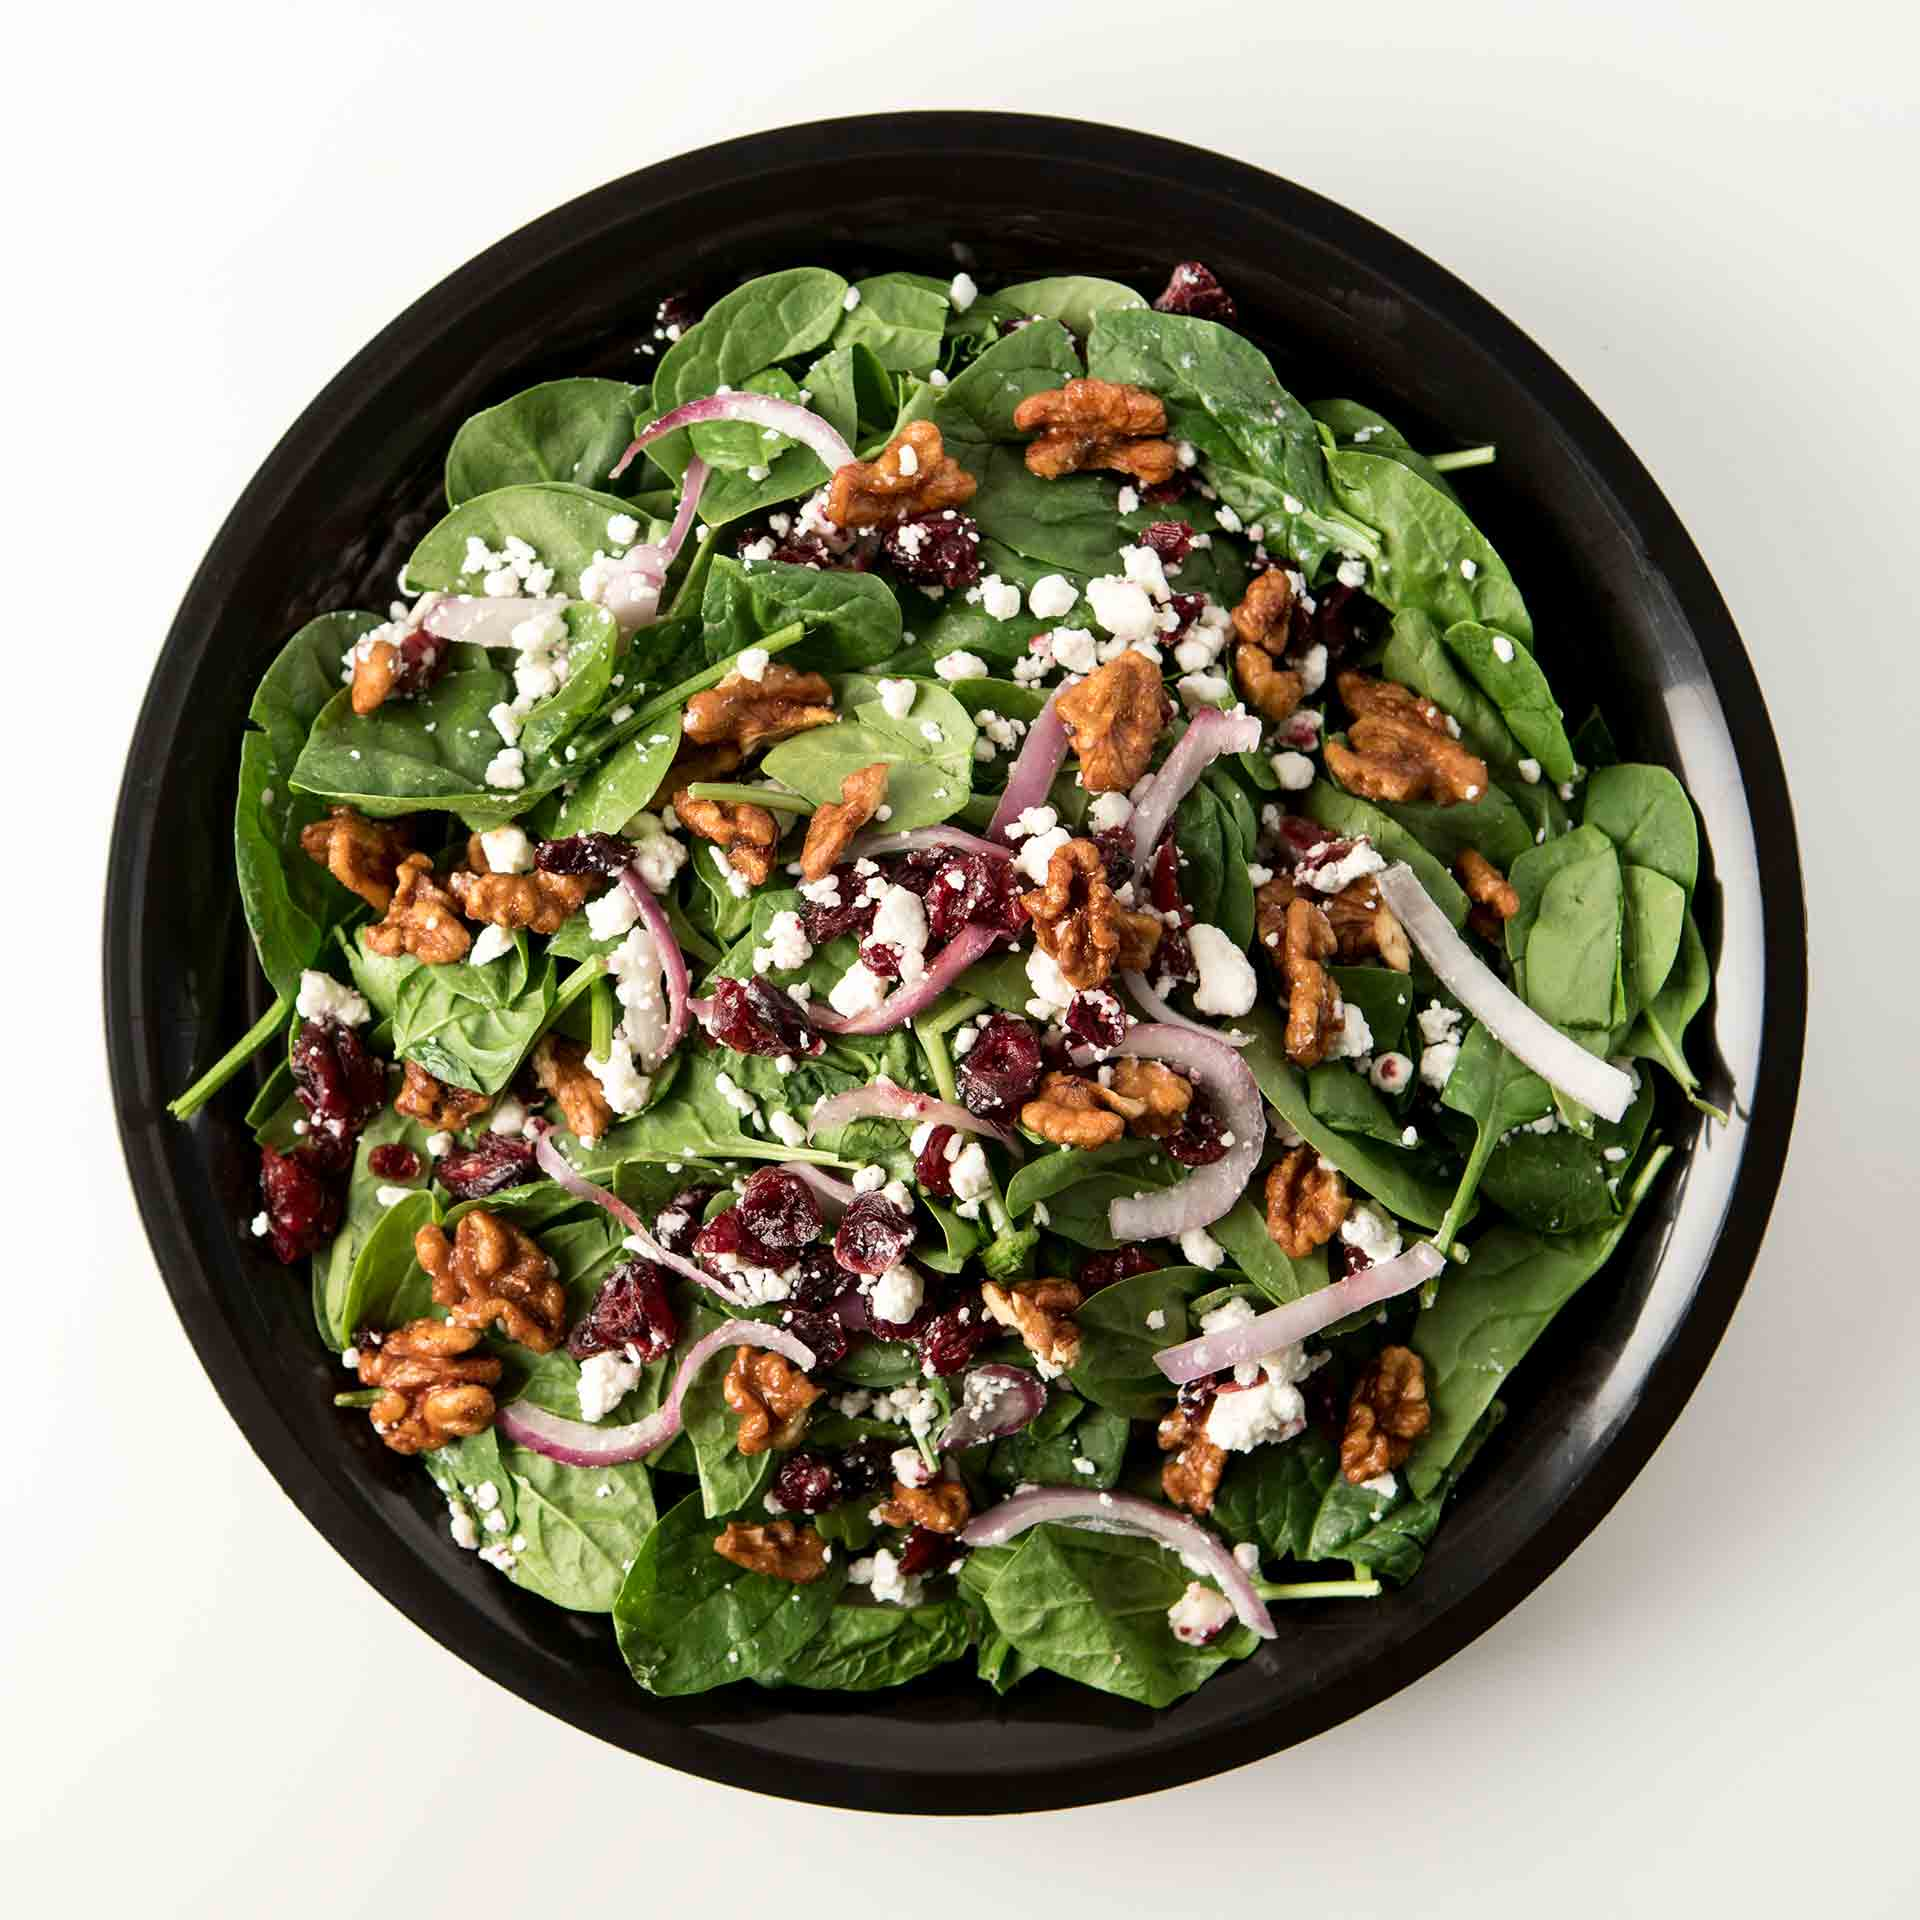 Spinach with Goat Cheese Salad